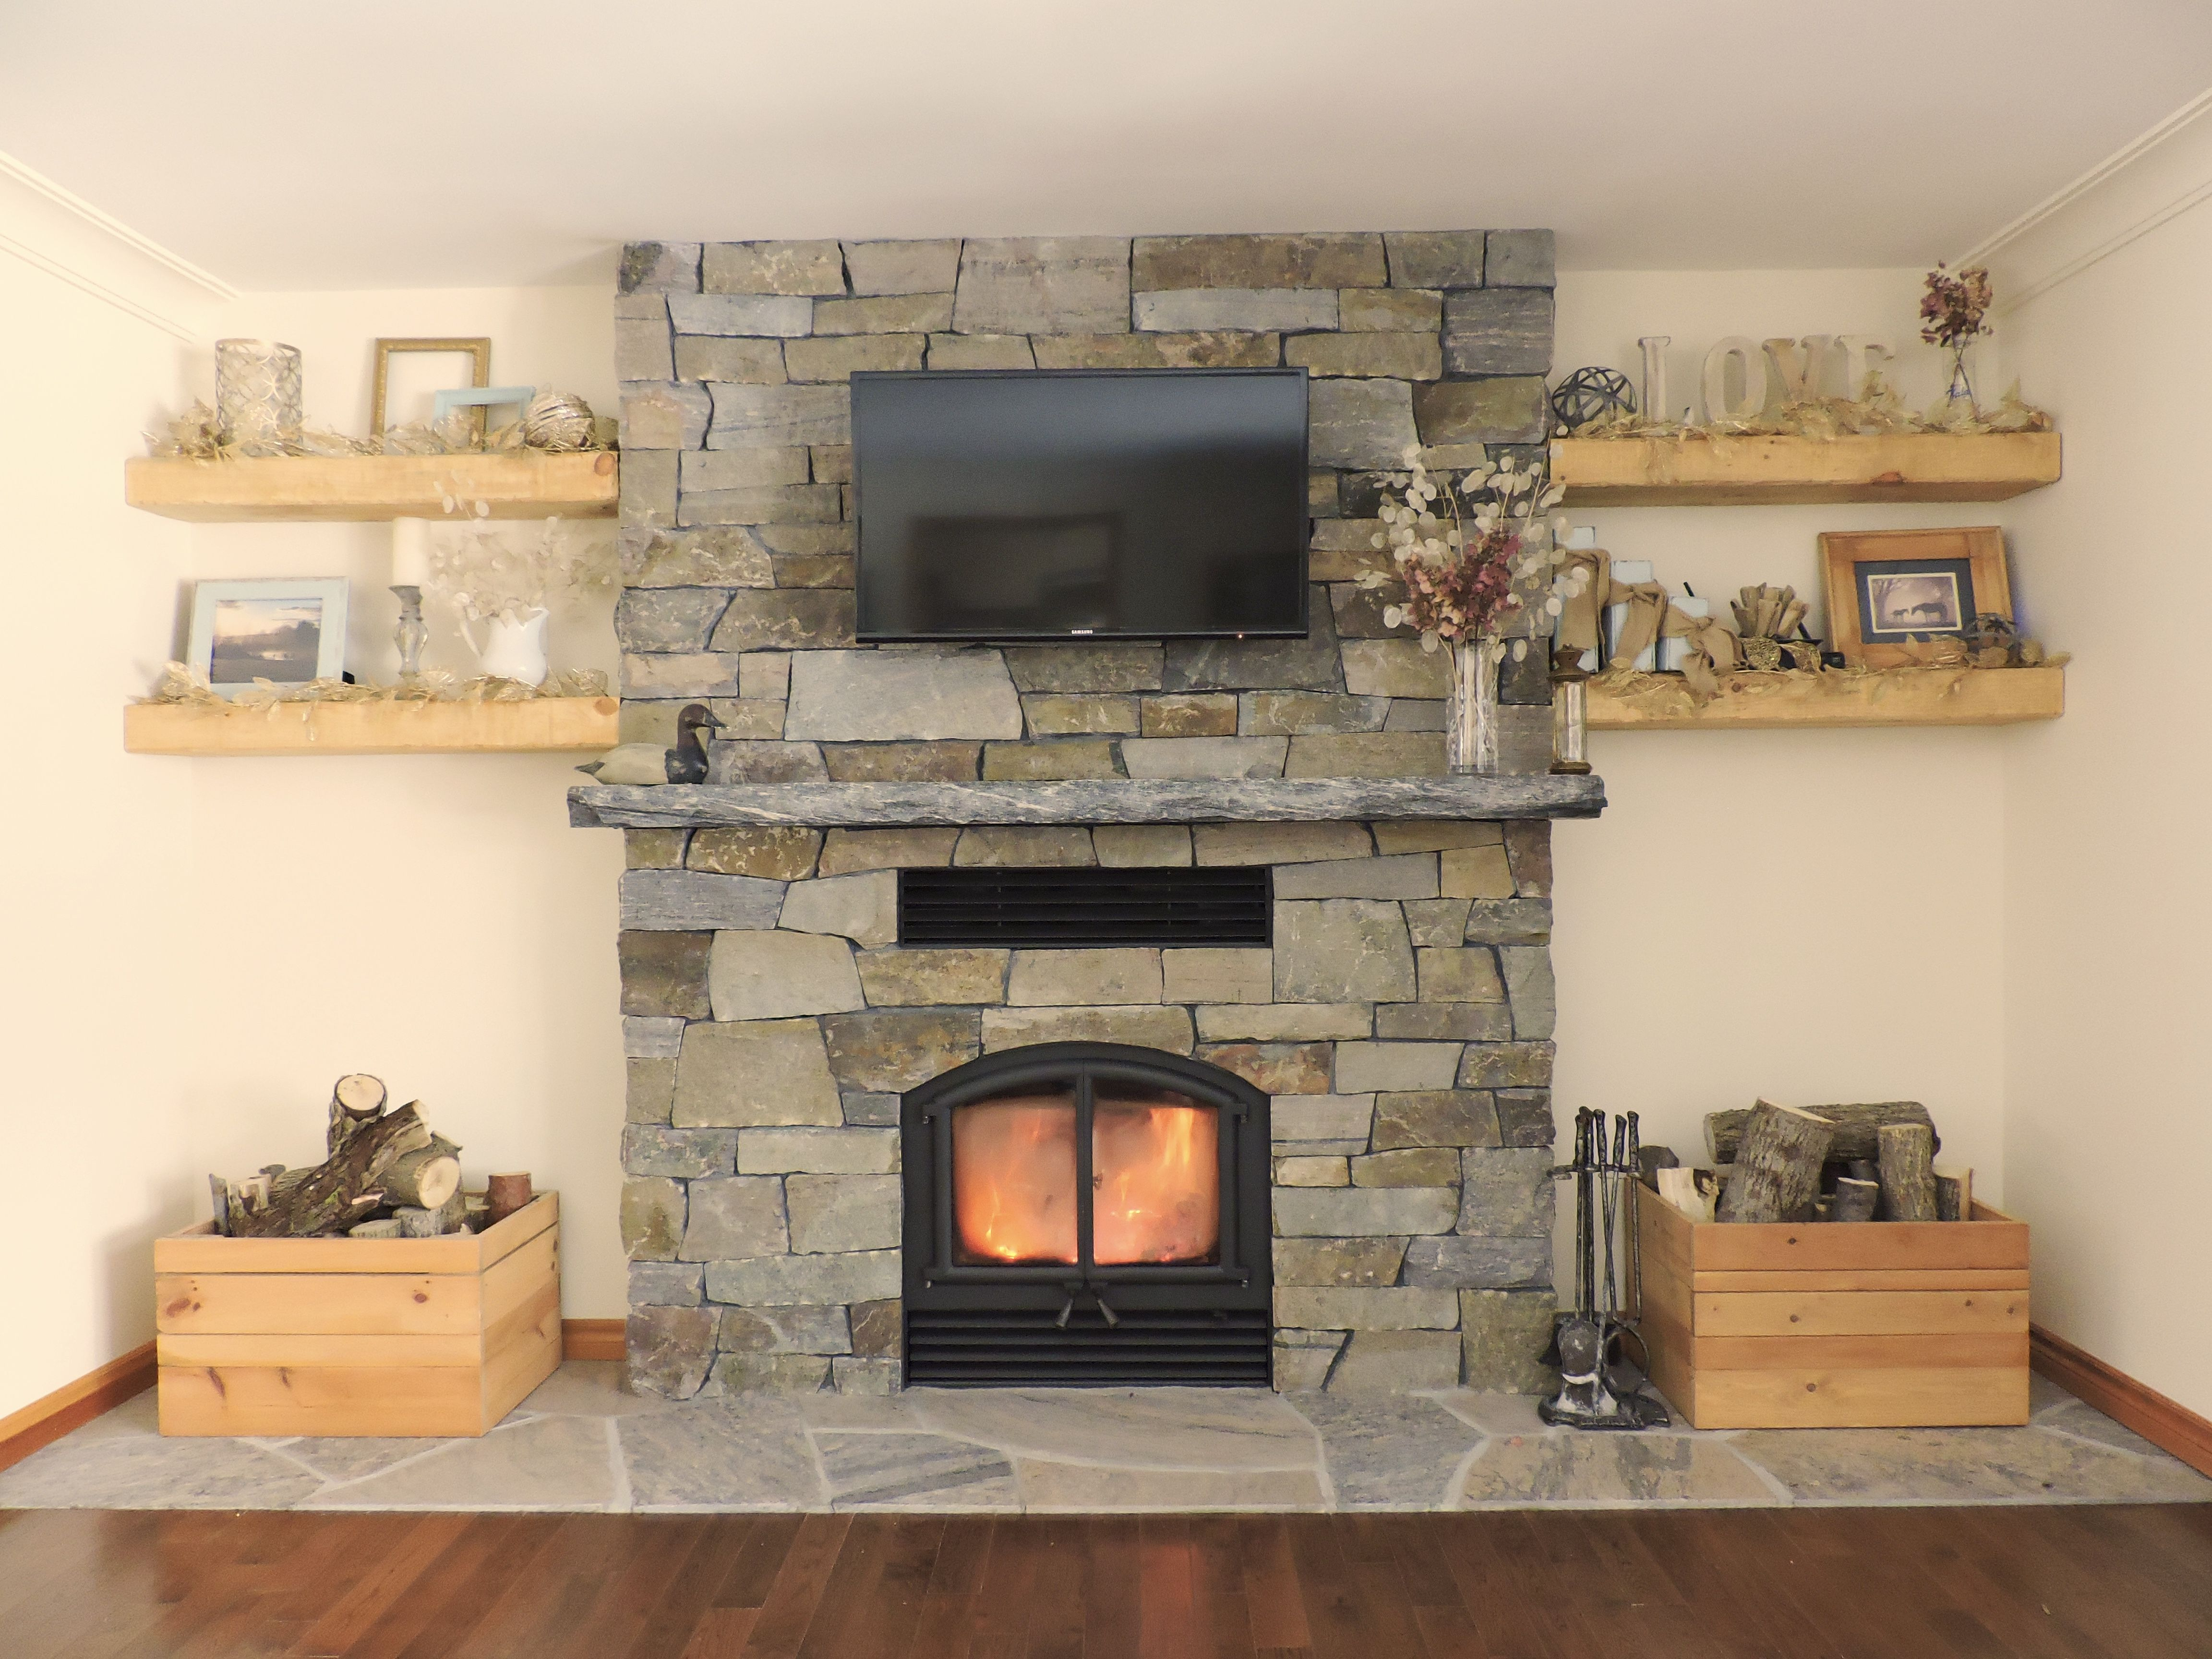 Opel 3 Catalytic   RSF Fireplaces   fireplace hearth   Pinterest ...